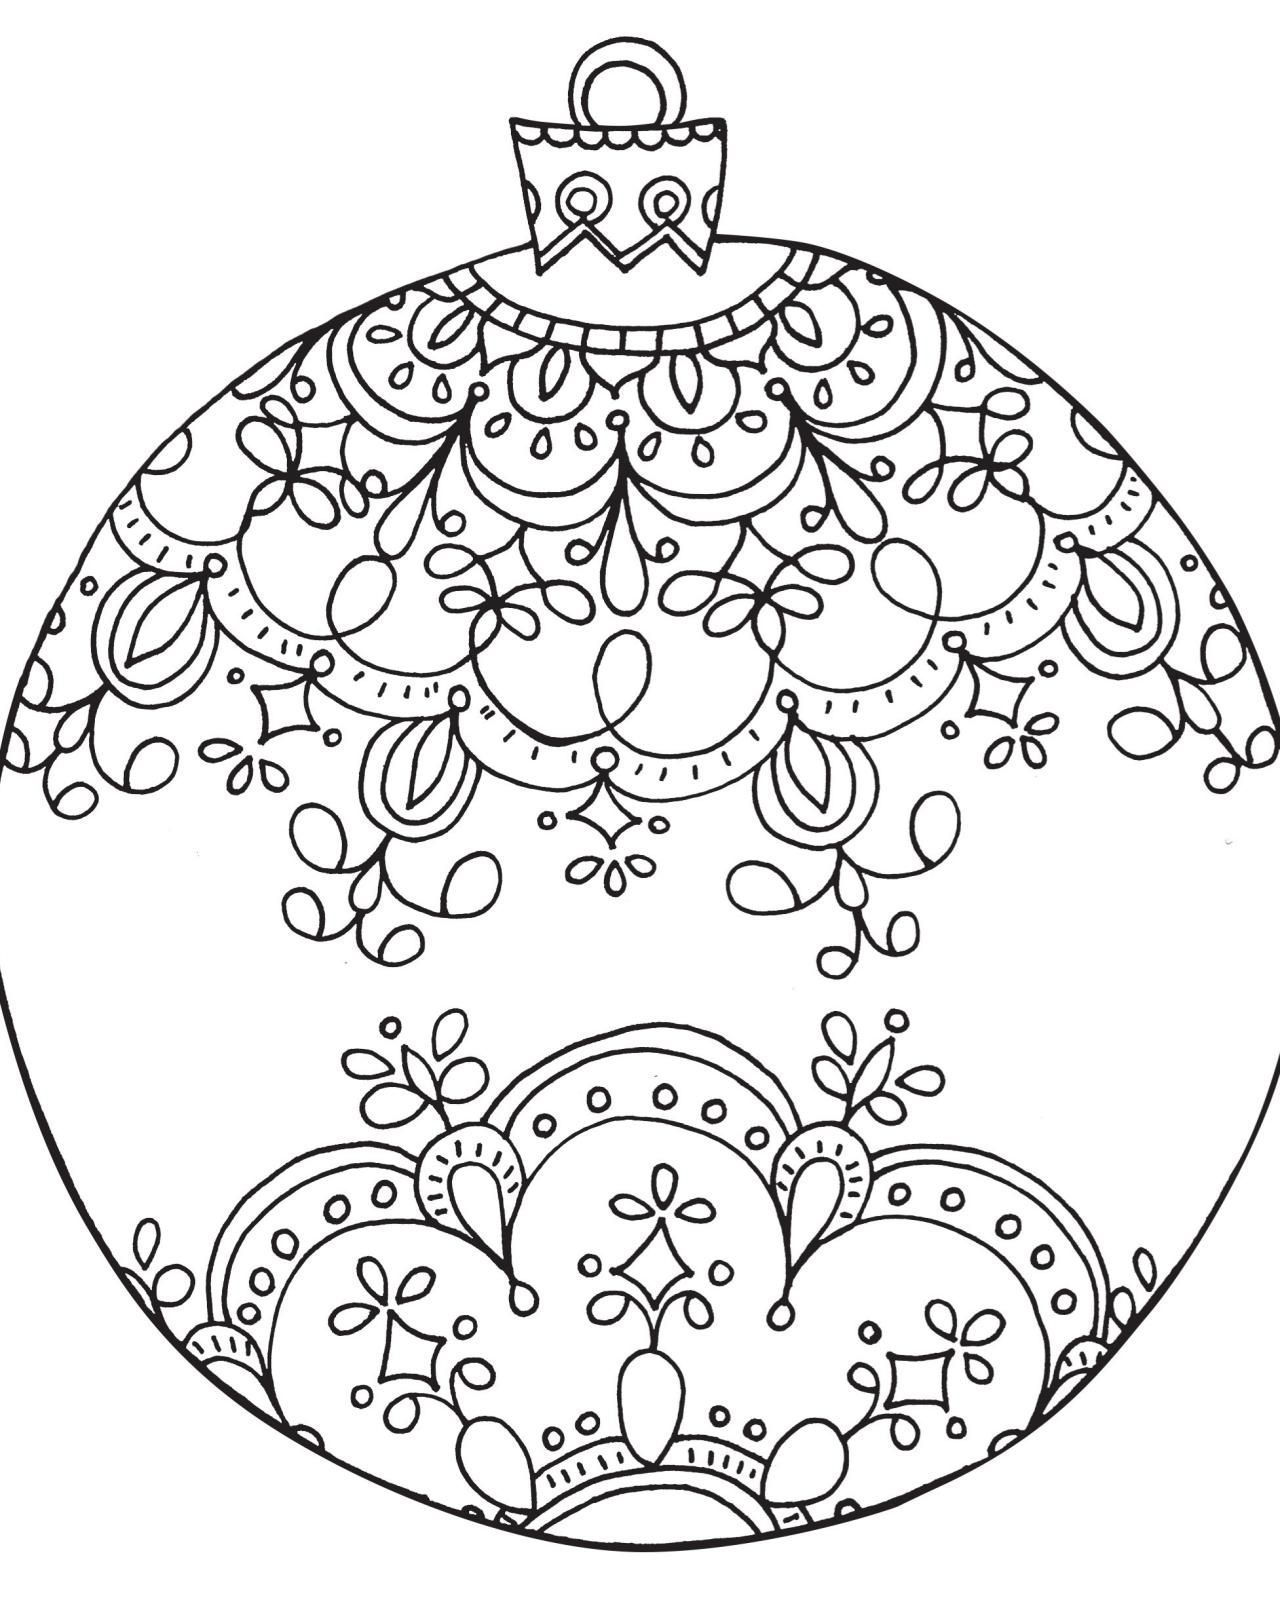 graphic about Christmas Coloring Pages for Adults Printable titled 26 Basic Xmas Coloring Webpages Range - Coloring Sheets